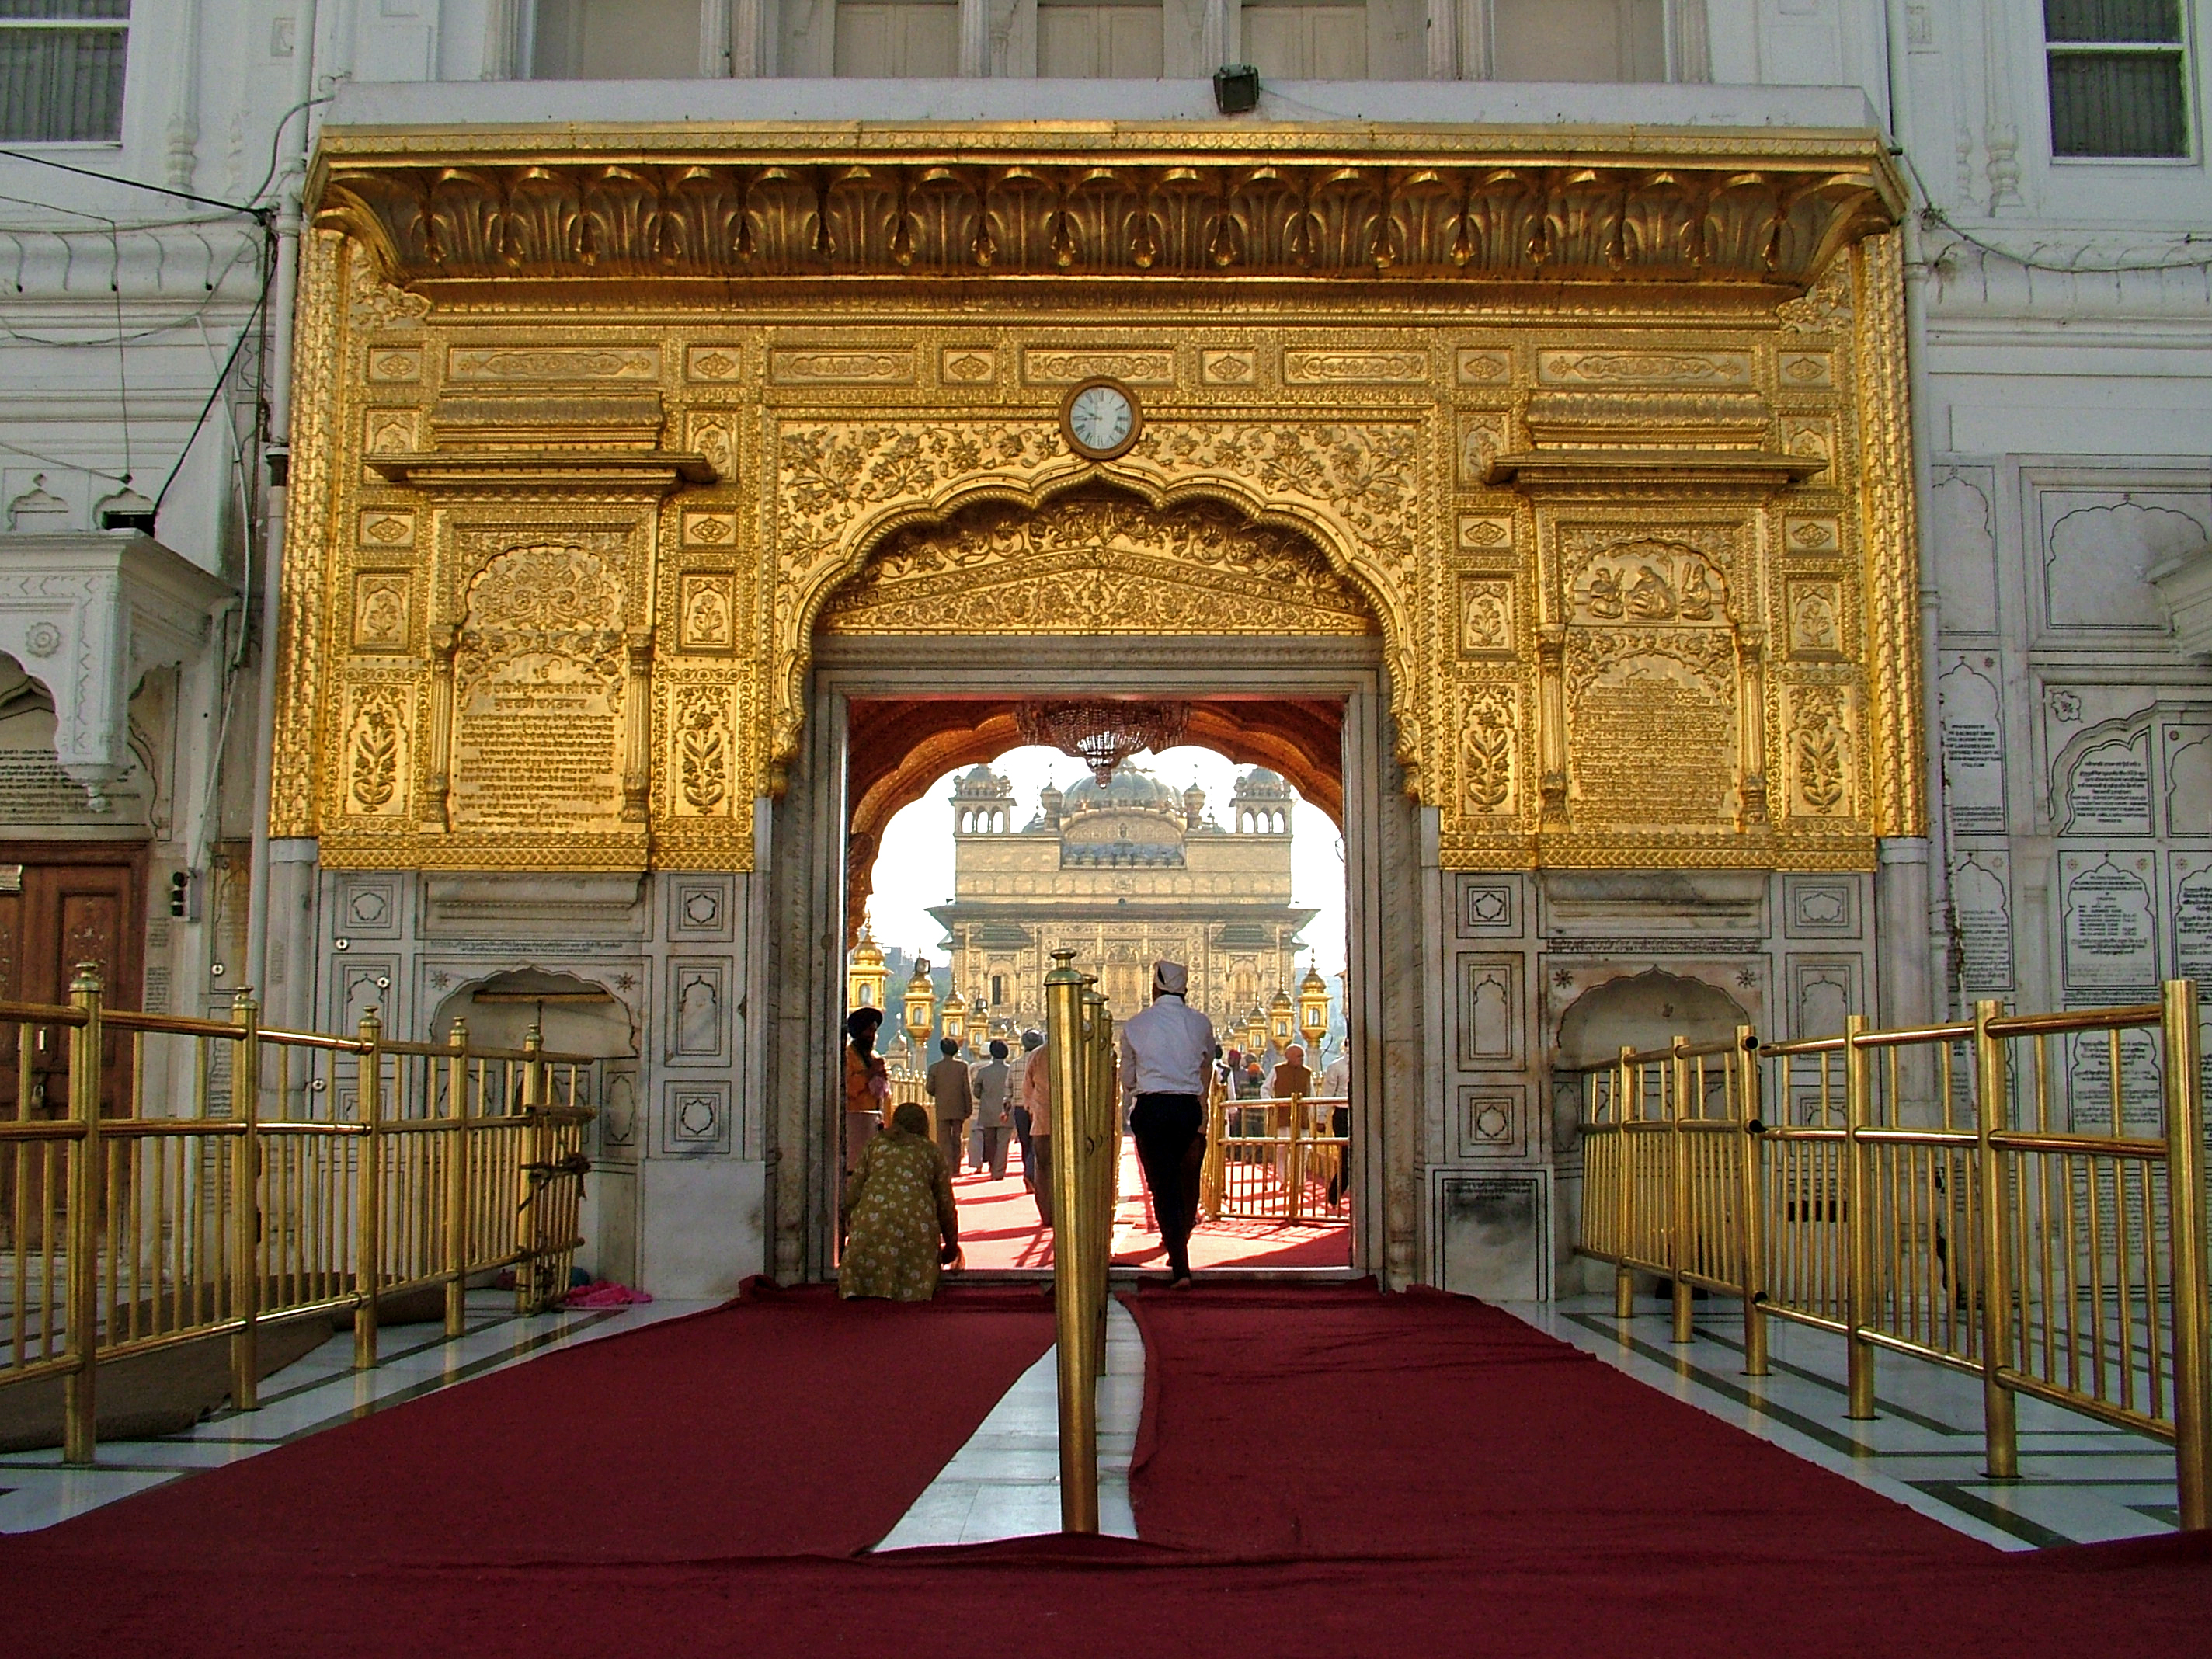 information about golden temple amritsar 10 most interesting and unknown facts about golden temple, amritsar 10 most interesting and unknown facts about golden temple, amritsar top facts santosh.